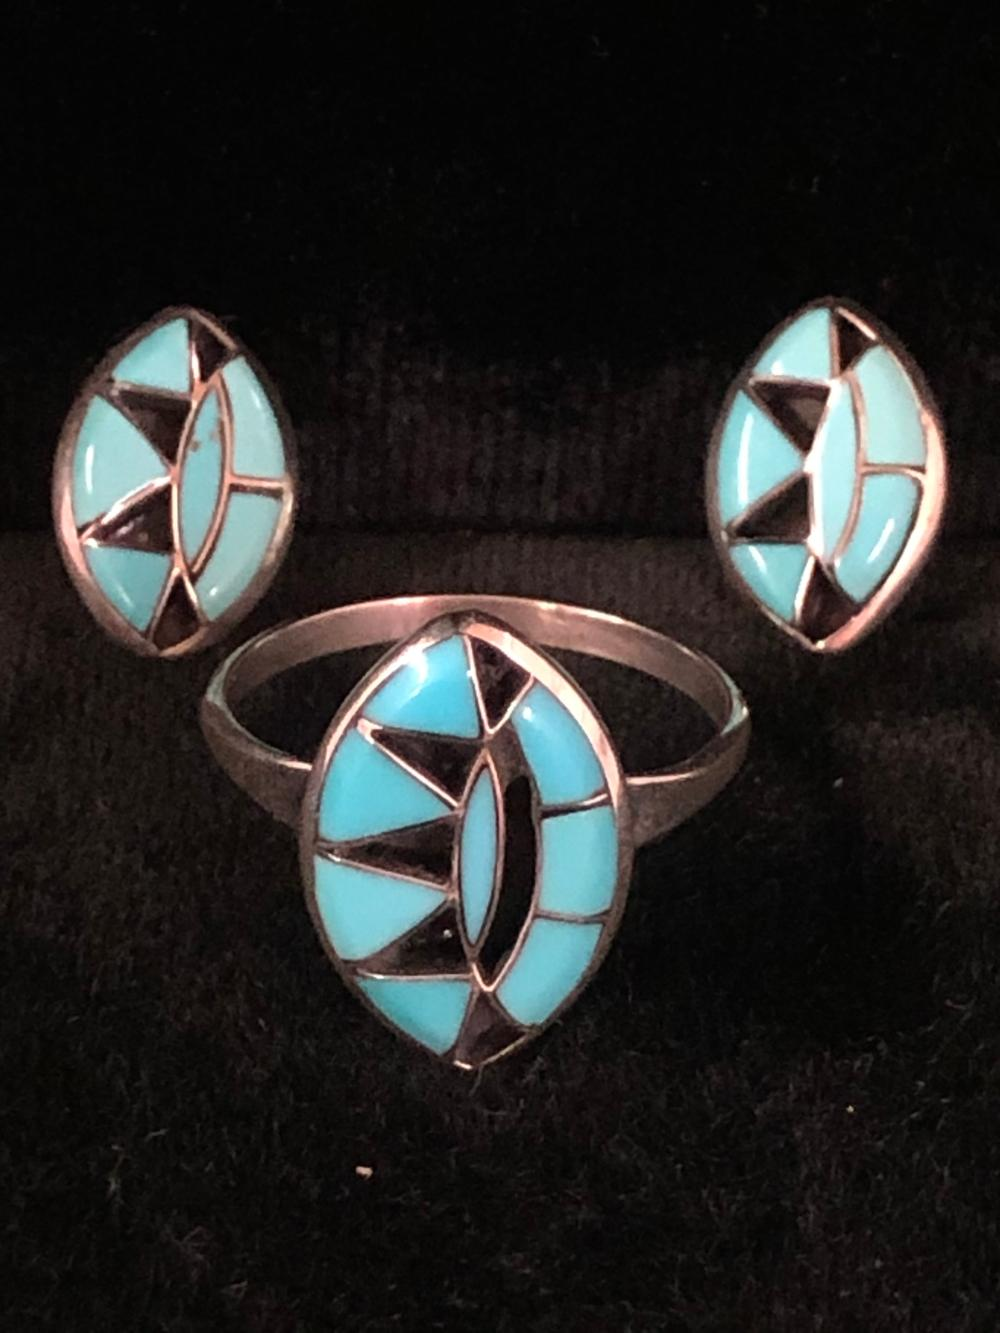 Turquoise stone inlay design sterling silver ring and earring 'set'